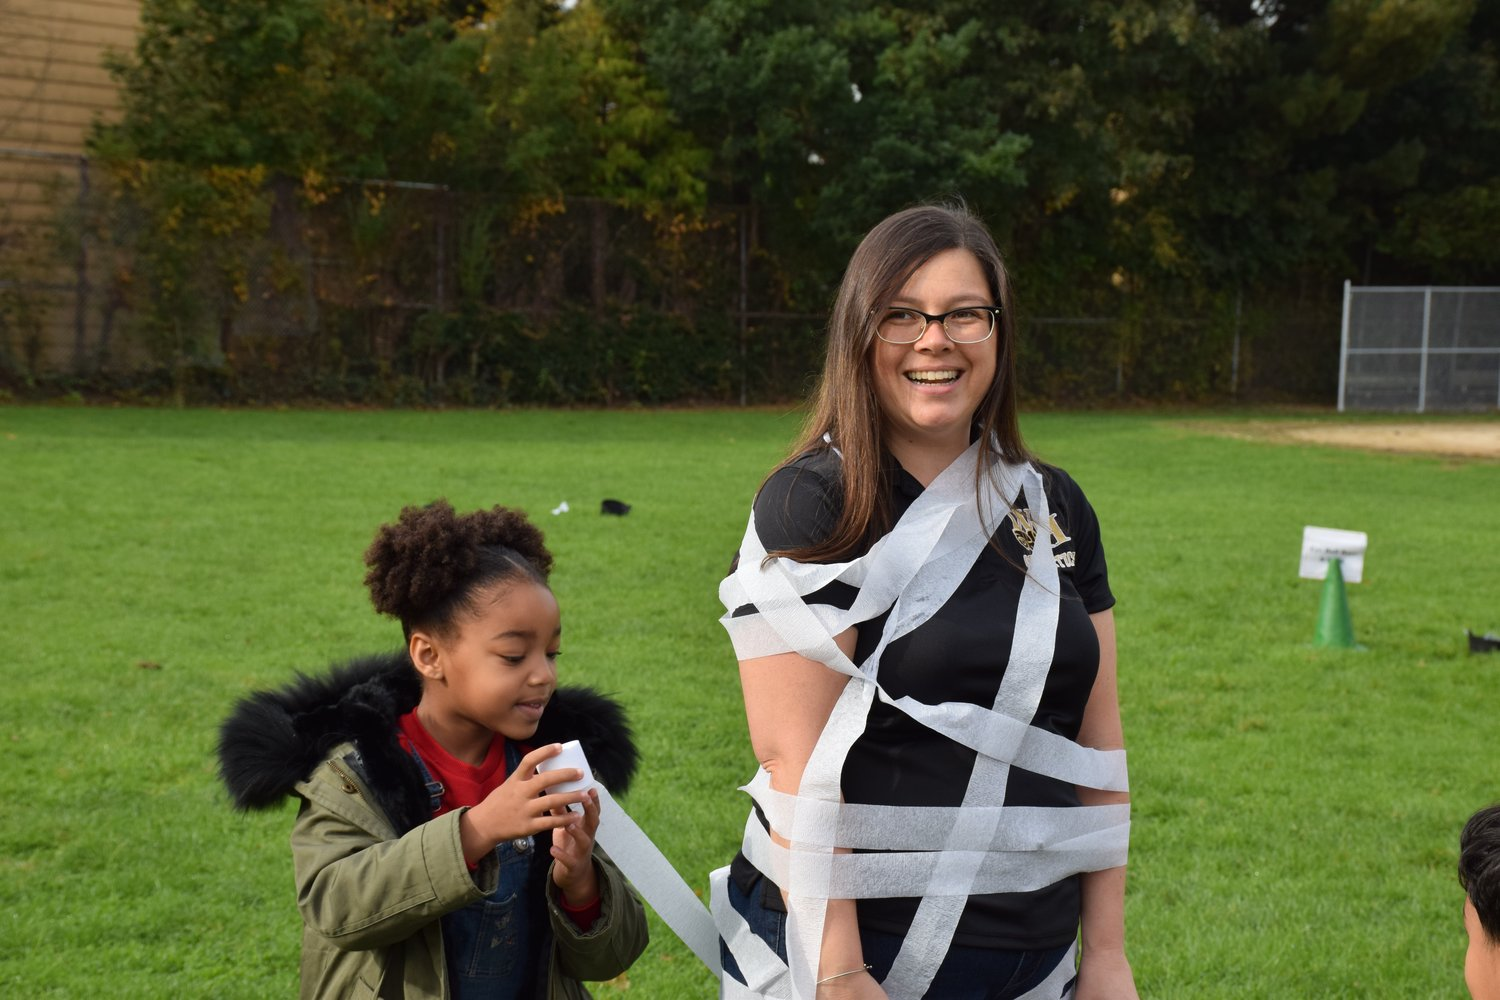 Principal Faith Tripp's students mummy-wrapped her.